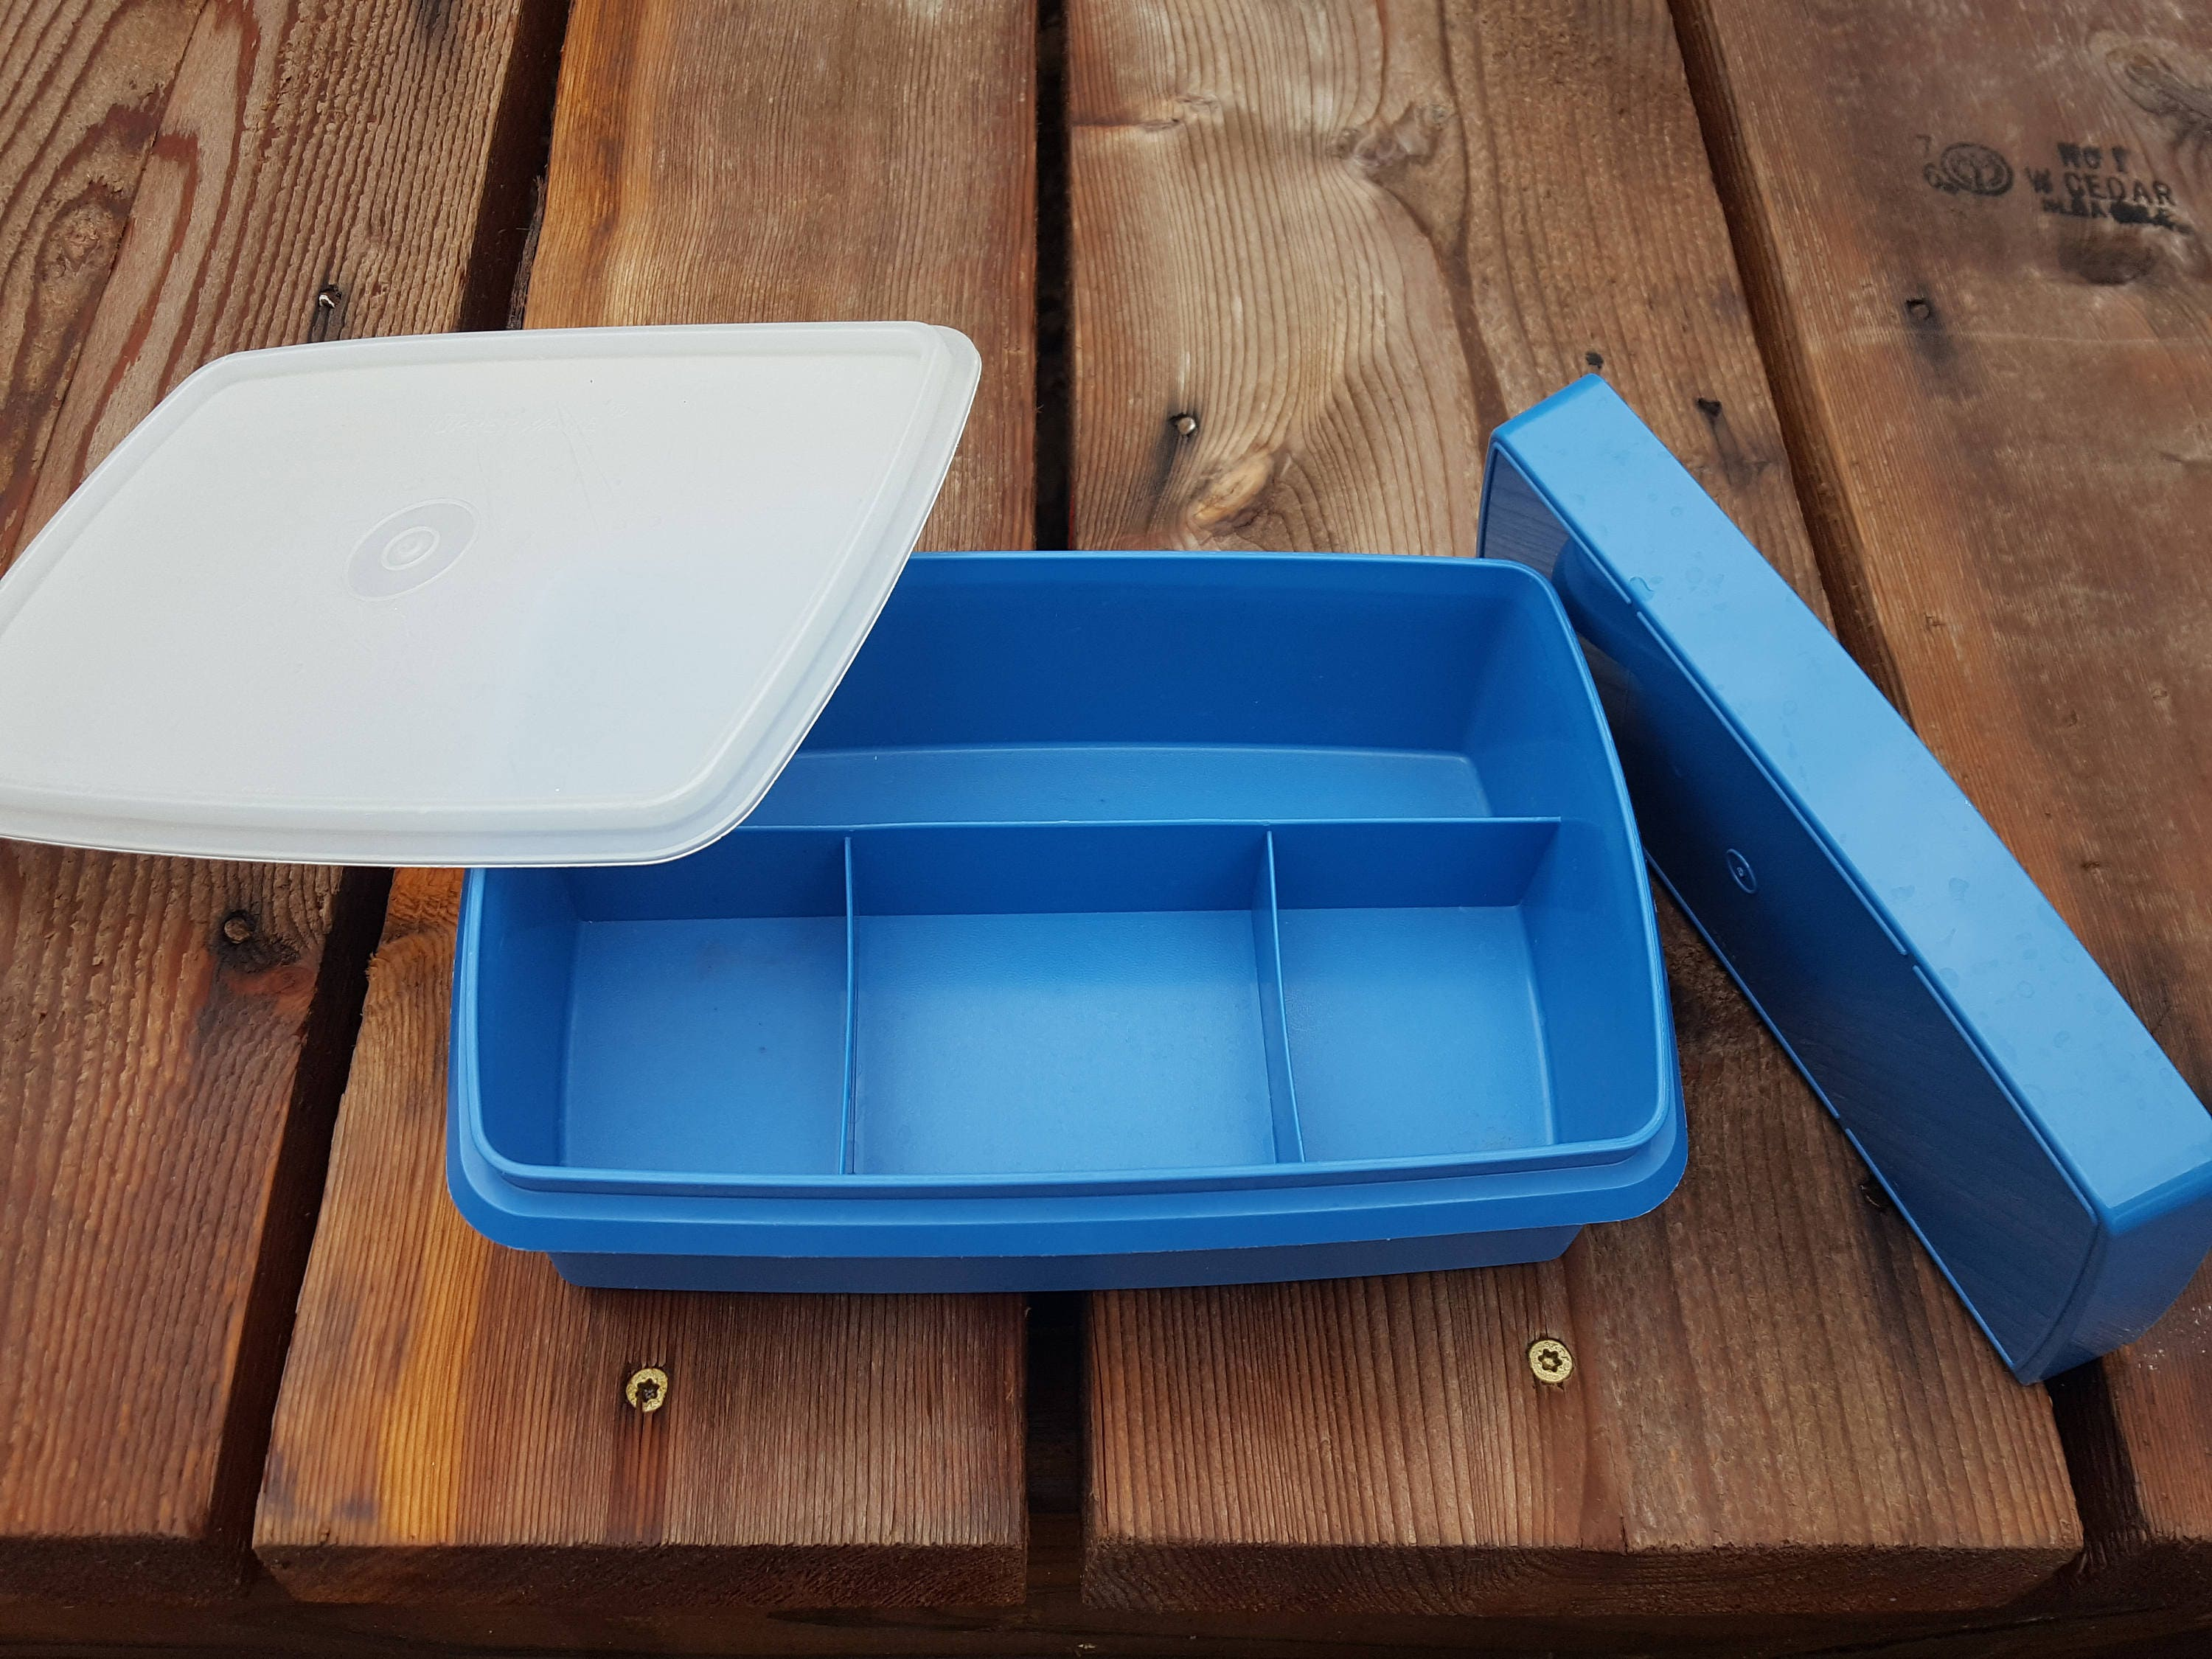 Vintage Blue Tupperware Container Craft Box Sewing Case Storage Container Camping Case Jewelry Making Storage Box